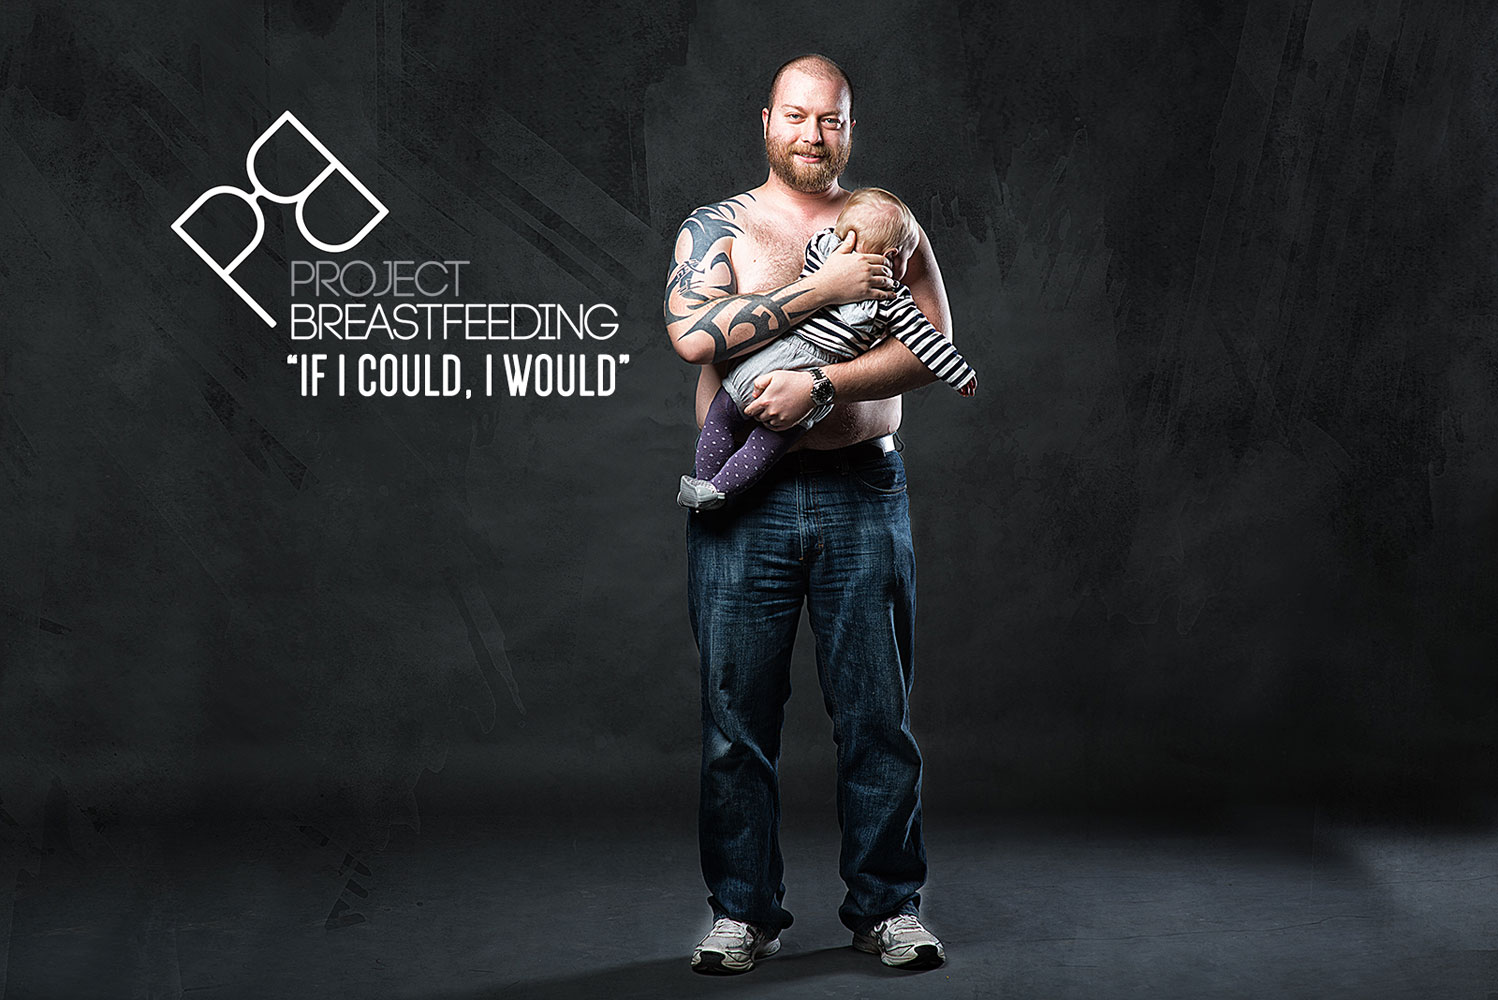 15 Breastfeeding Controversies For World Breastfeeding Week